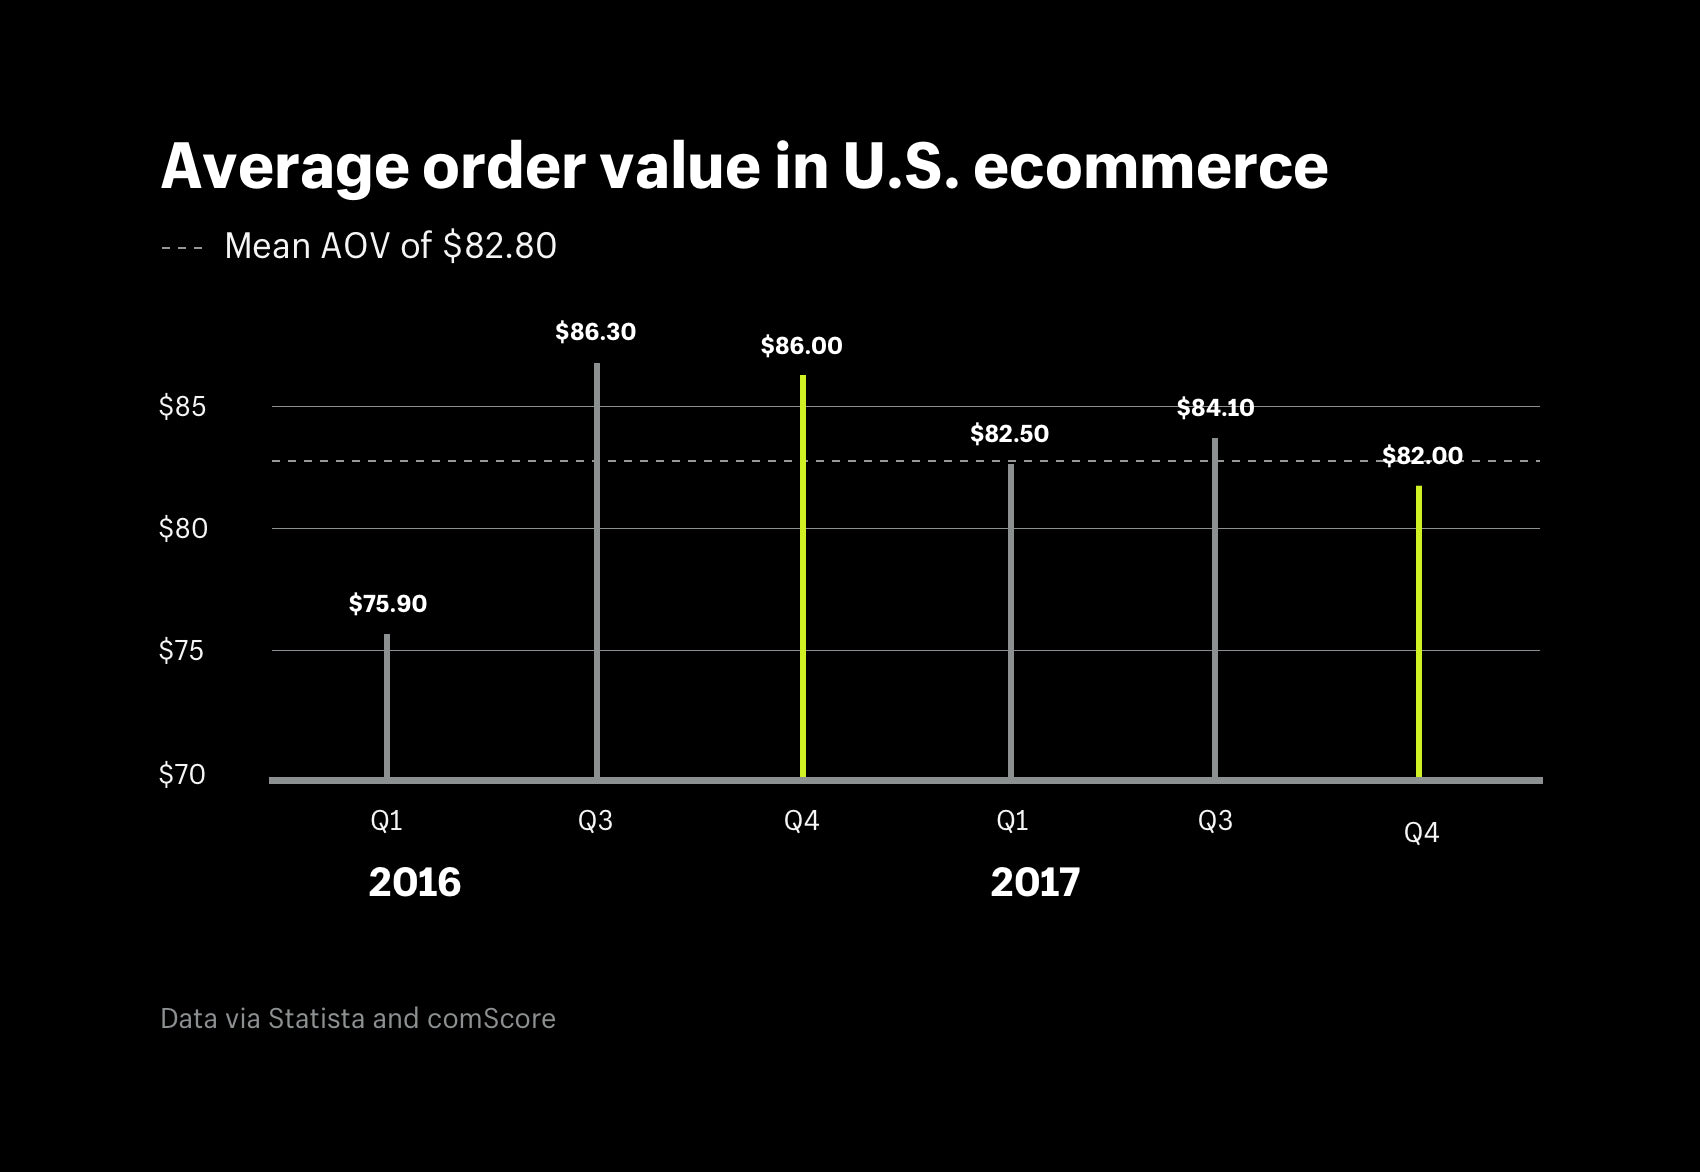 Average order value in U.S. ecommerce QoQ